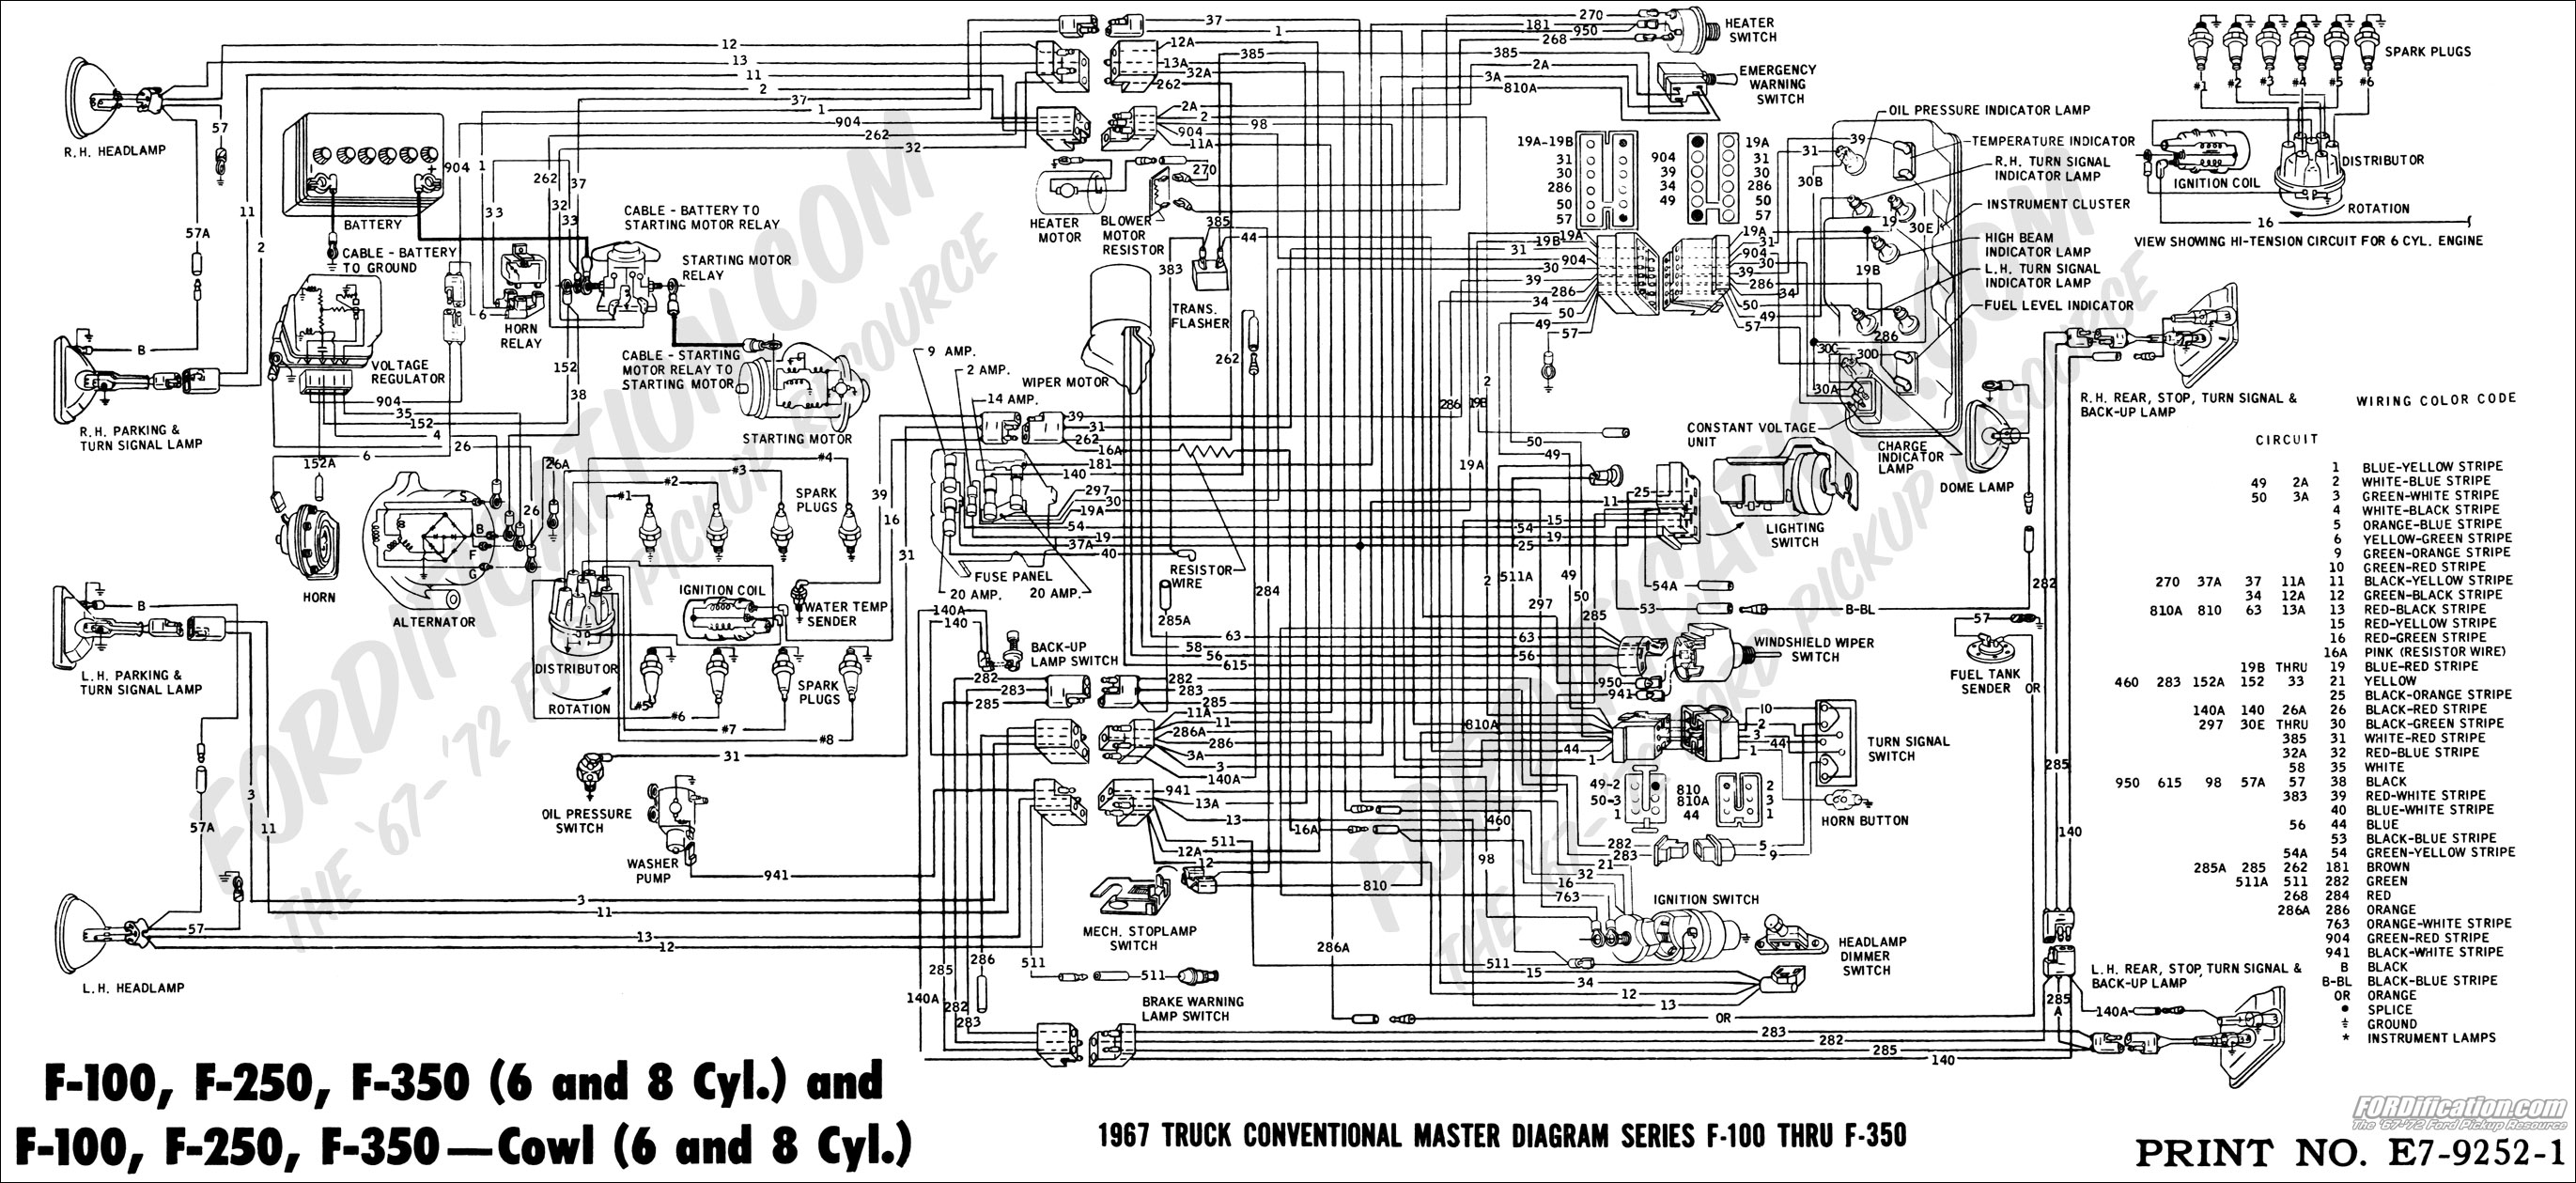 67masterdiagram ford truck technical drawings and schematics section h wiring 1969 ford f100 steering column wiring diagram at gsmportal.co